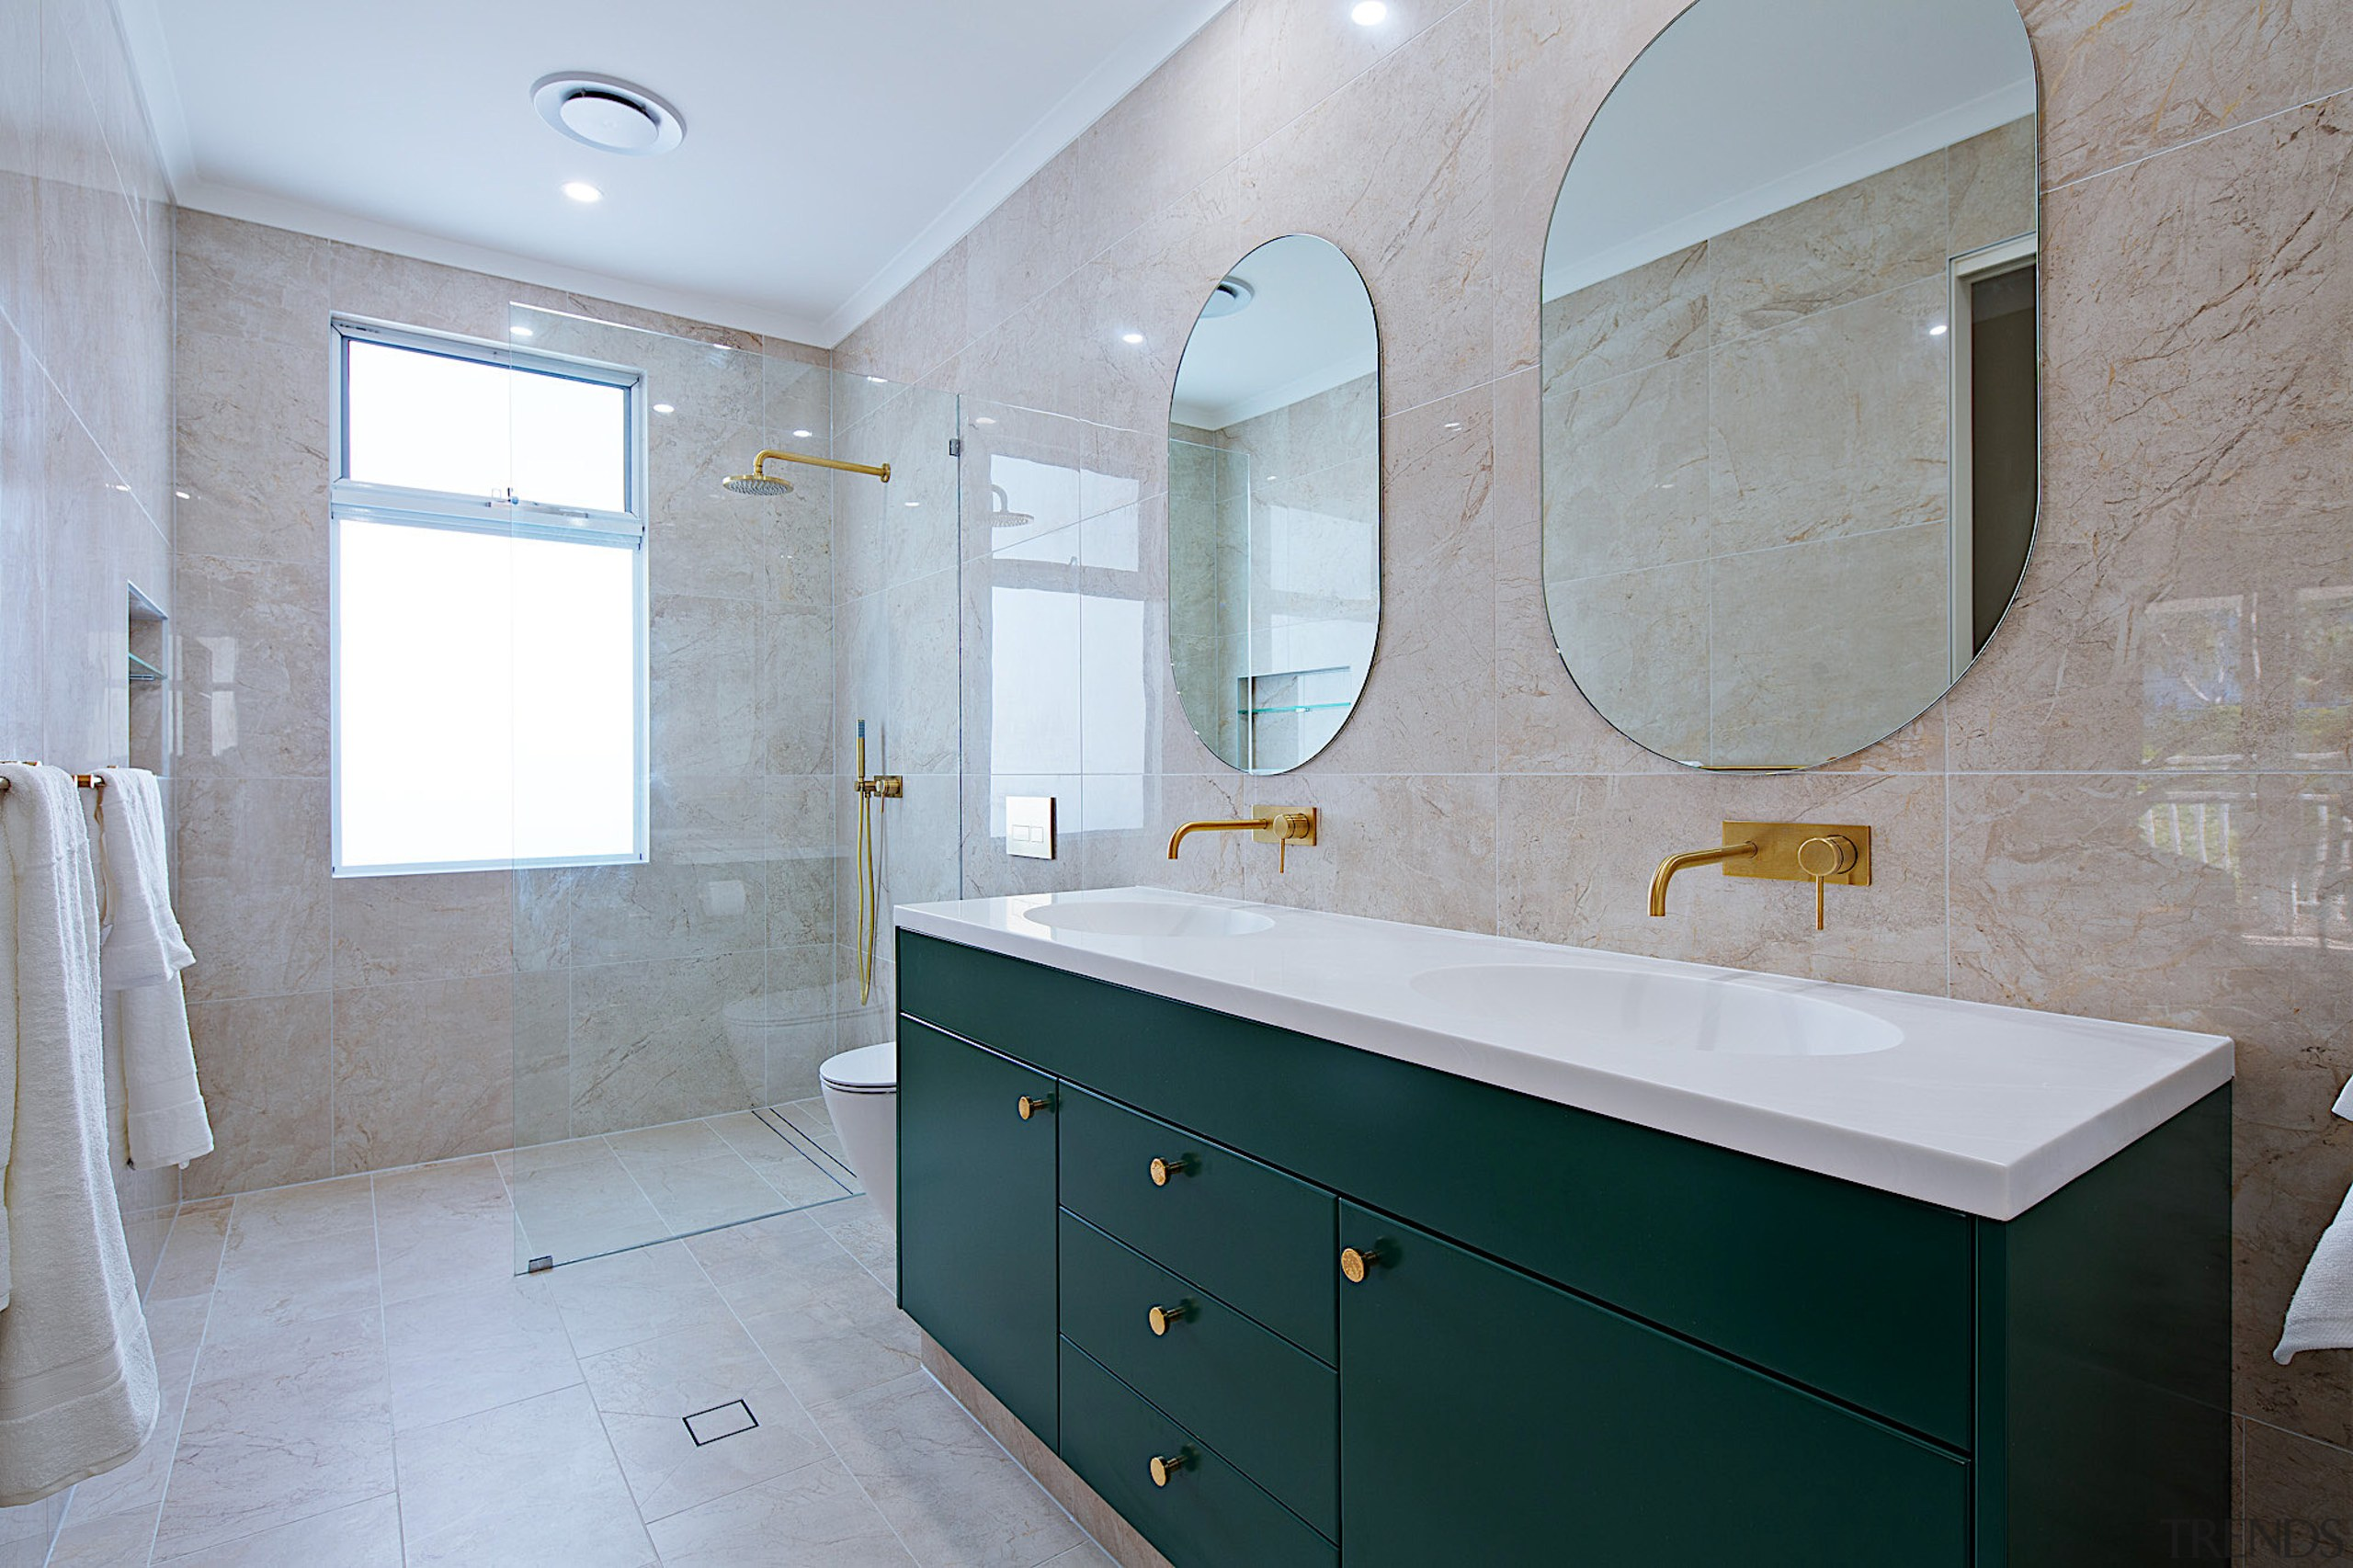 After removing the bathtub, this ensuite now feels